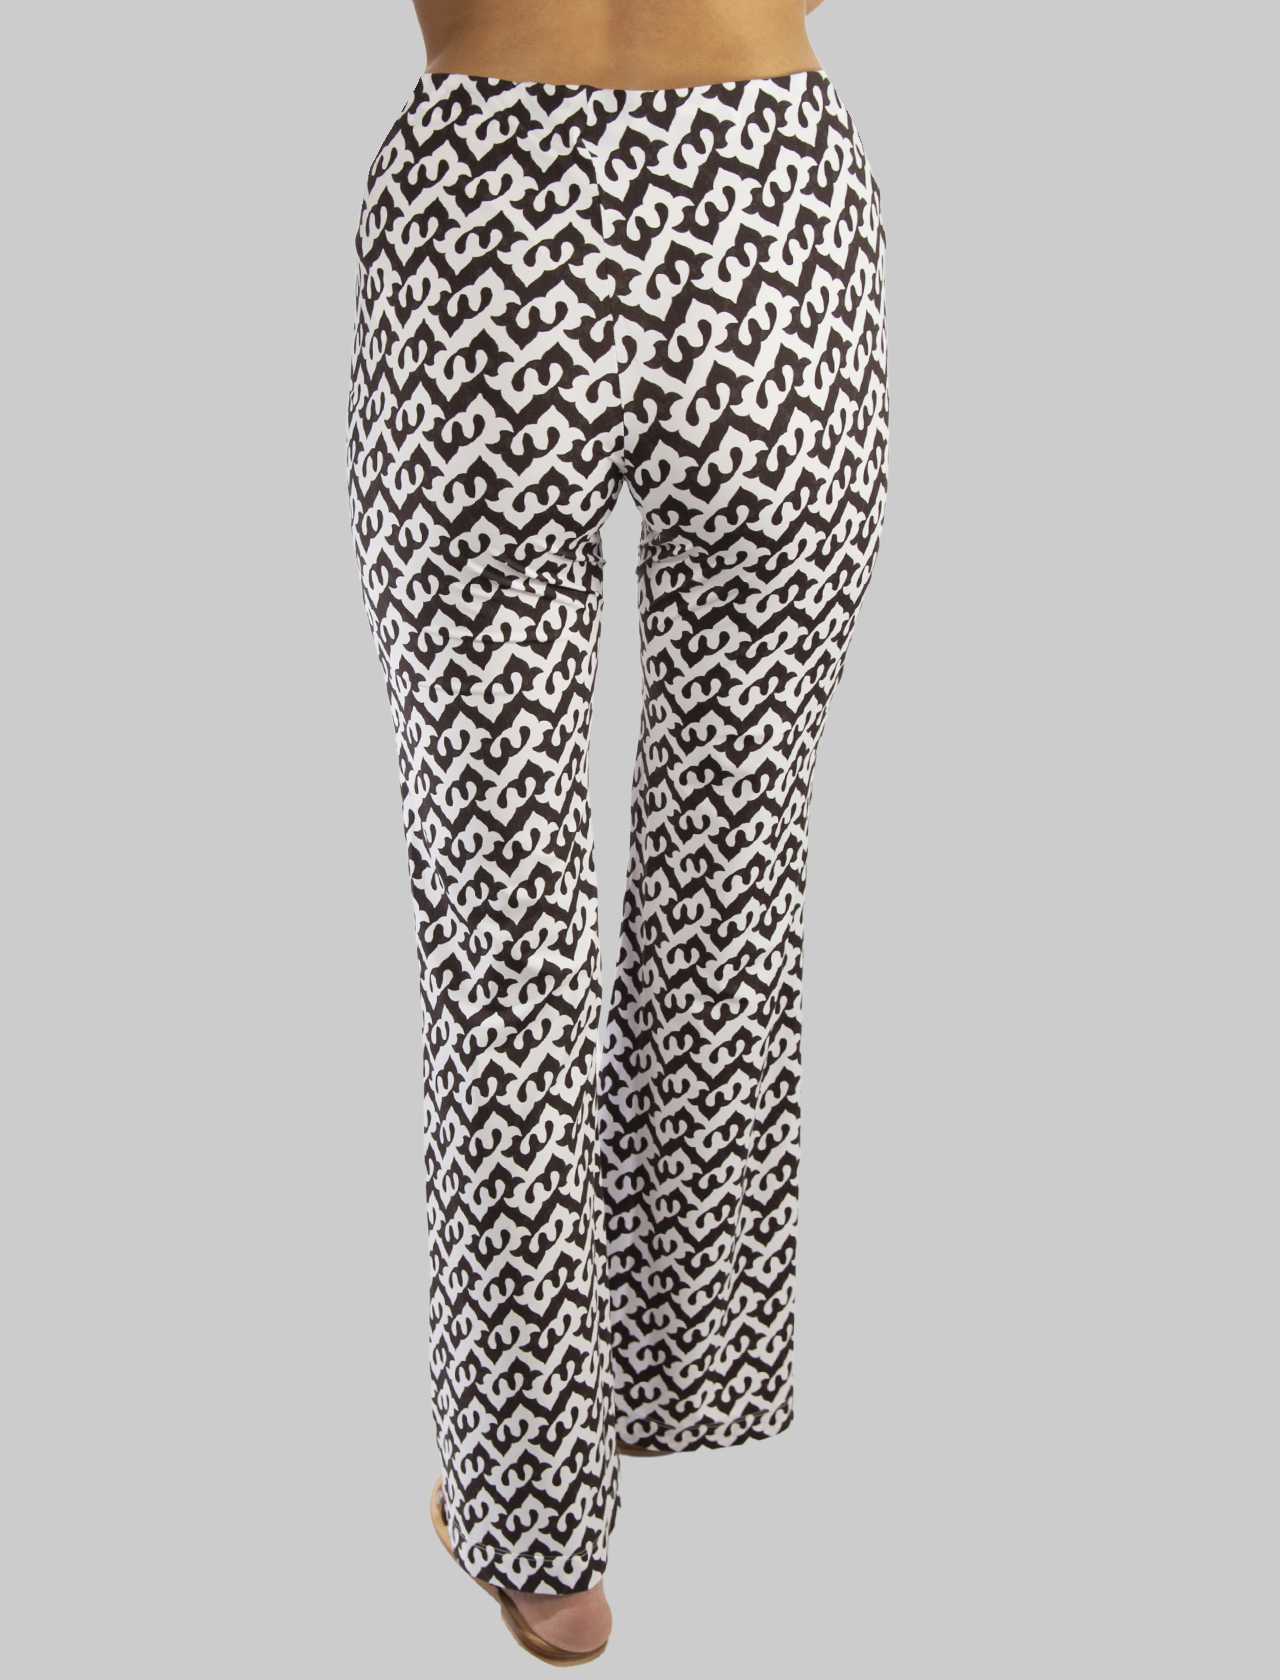 Women's Clothing Ceres Drop Trousers in Brown and Natural Jersey Maliparmi | Skirts and Pants | JH719570498B4069